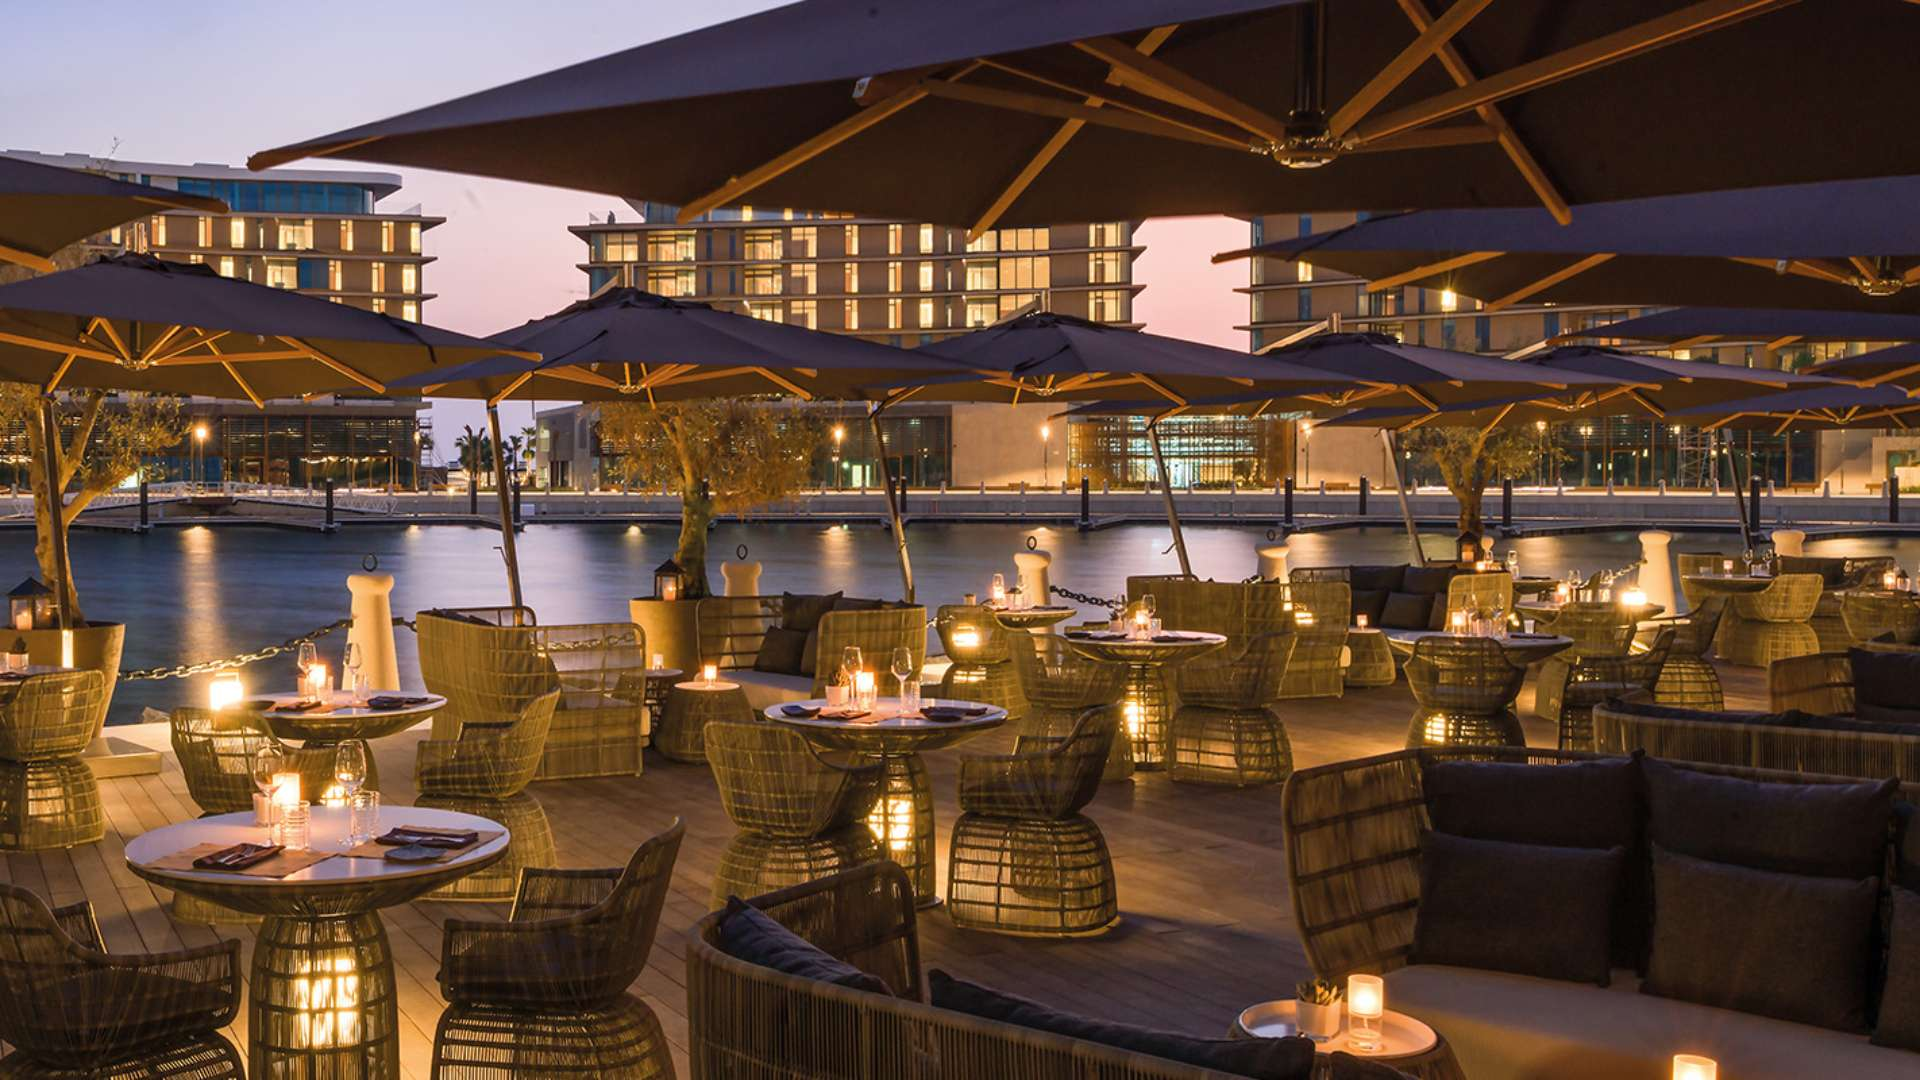 Bvlgari Resort Dubai